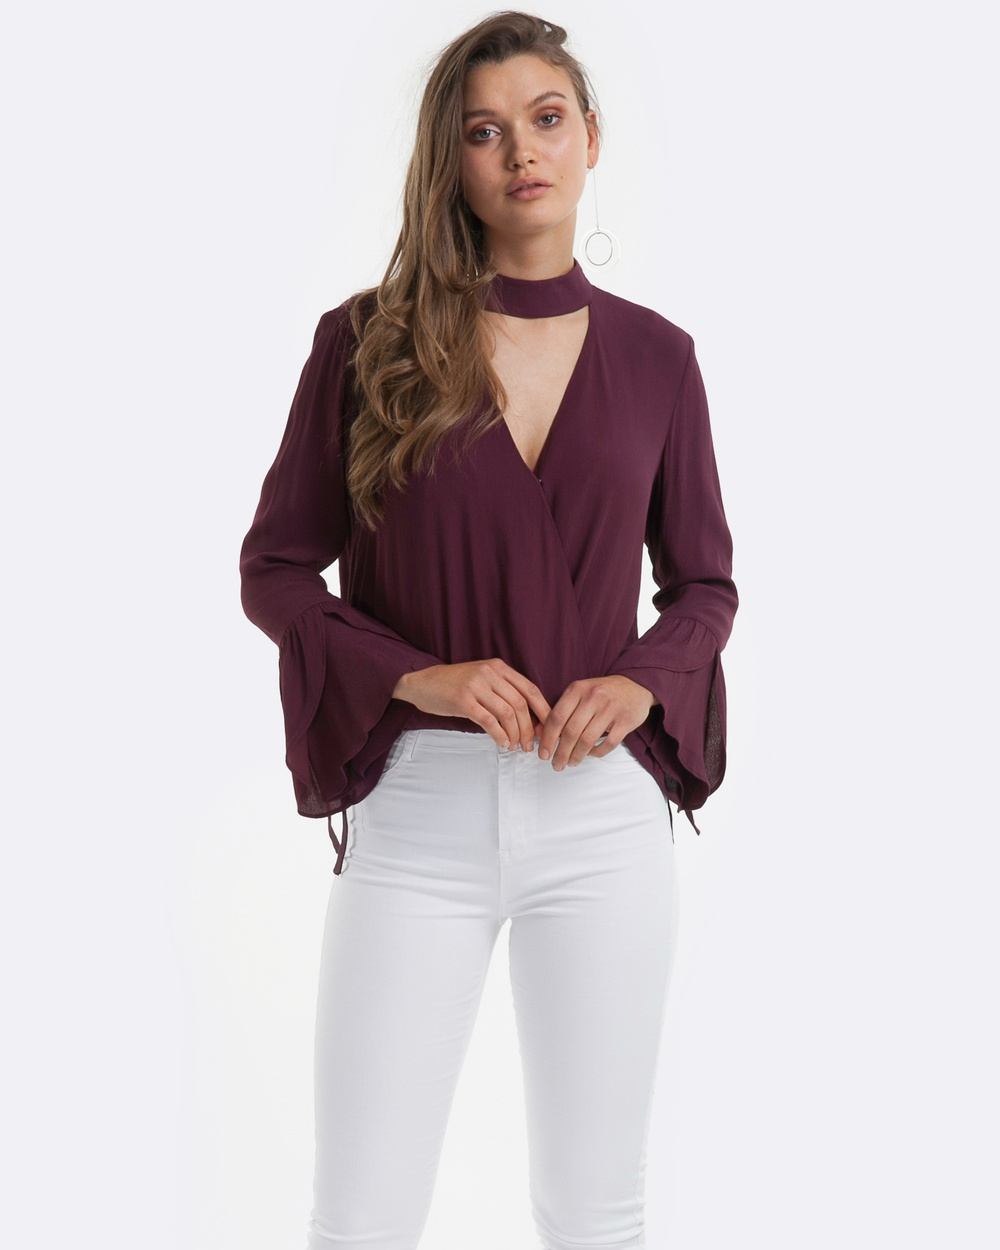 Amelius Allure Blouse Tops Wine Allure Blouse